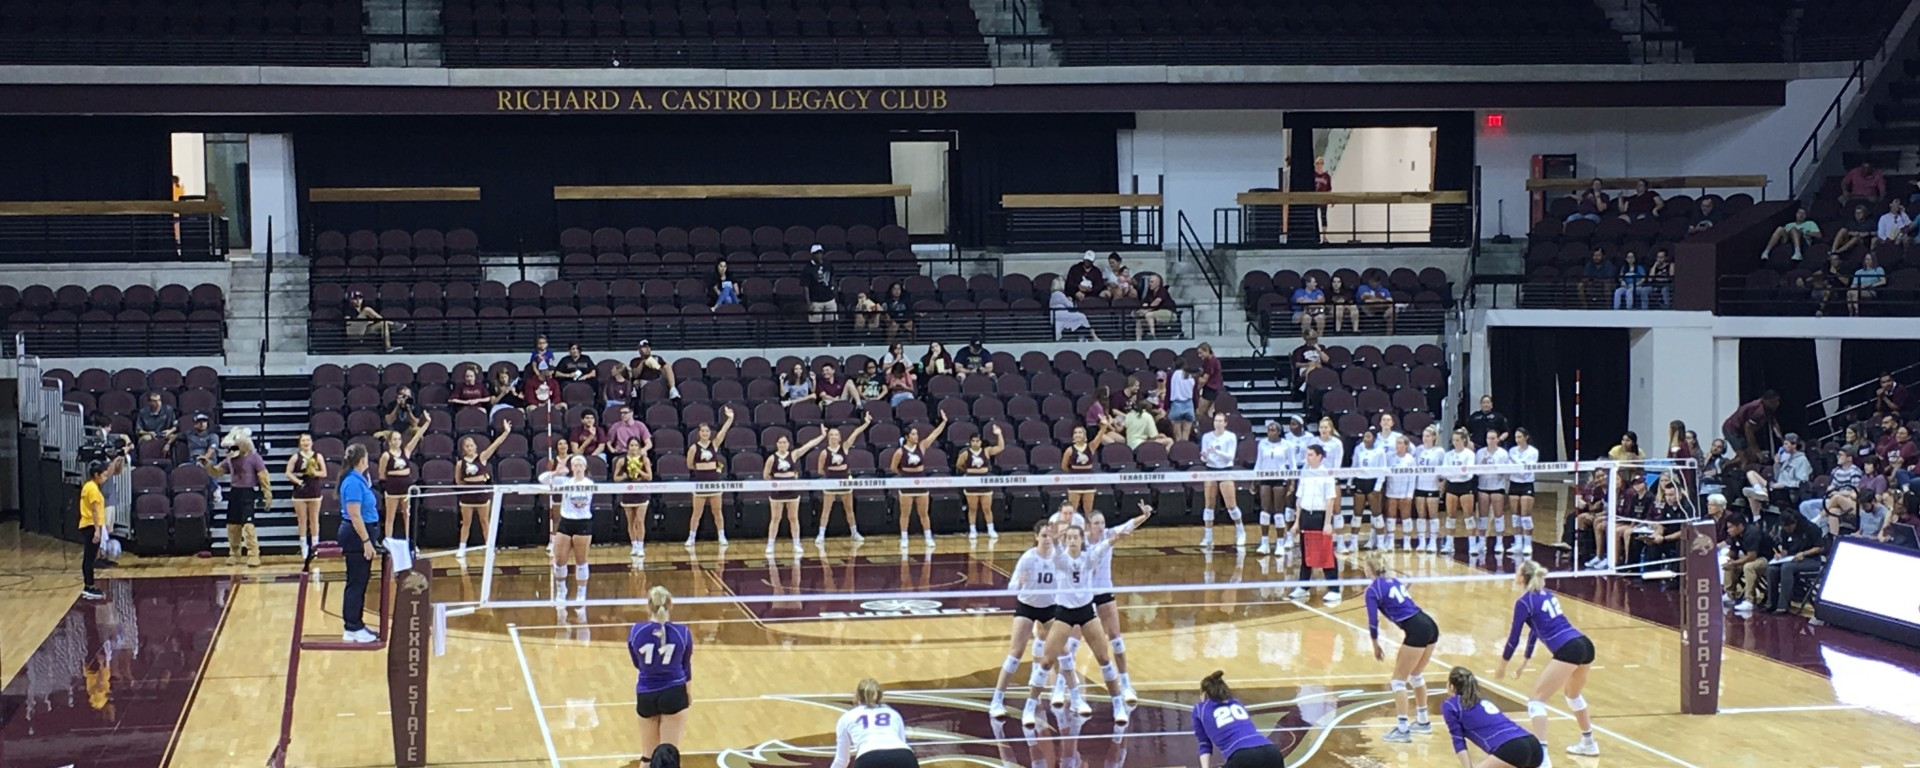 Northern Iowa prepares to recieve the ball from Texas State's server, while Texas State, standing towards the front of the net in a diamond formation, waits for the ball to be served.